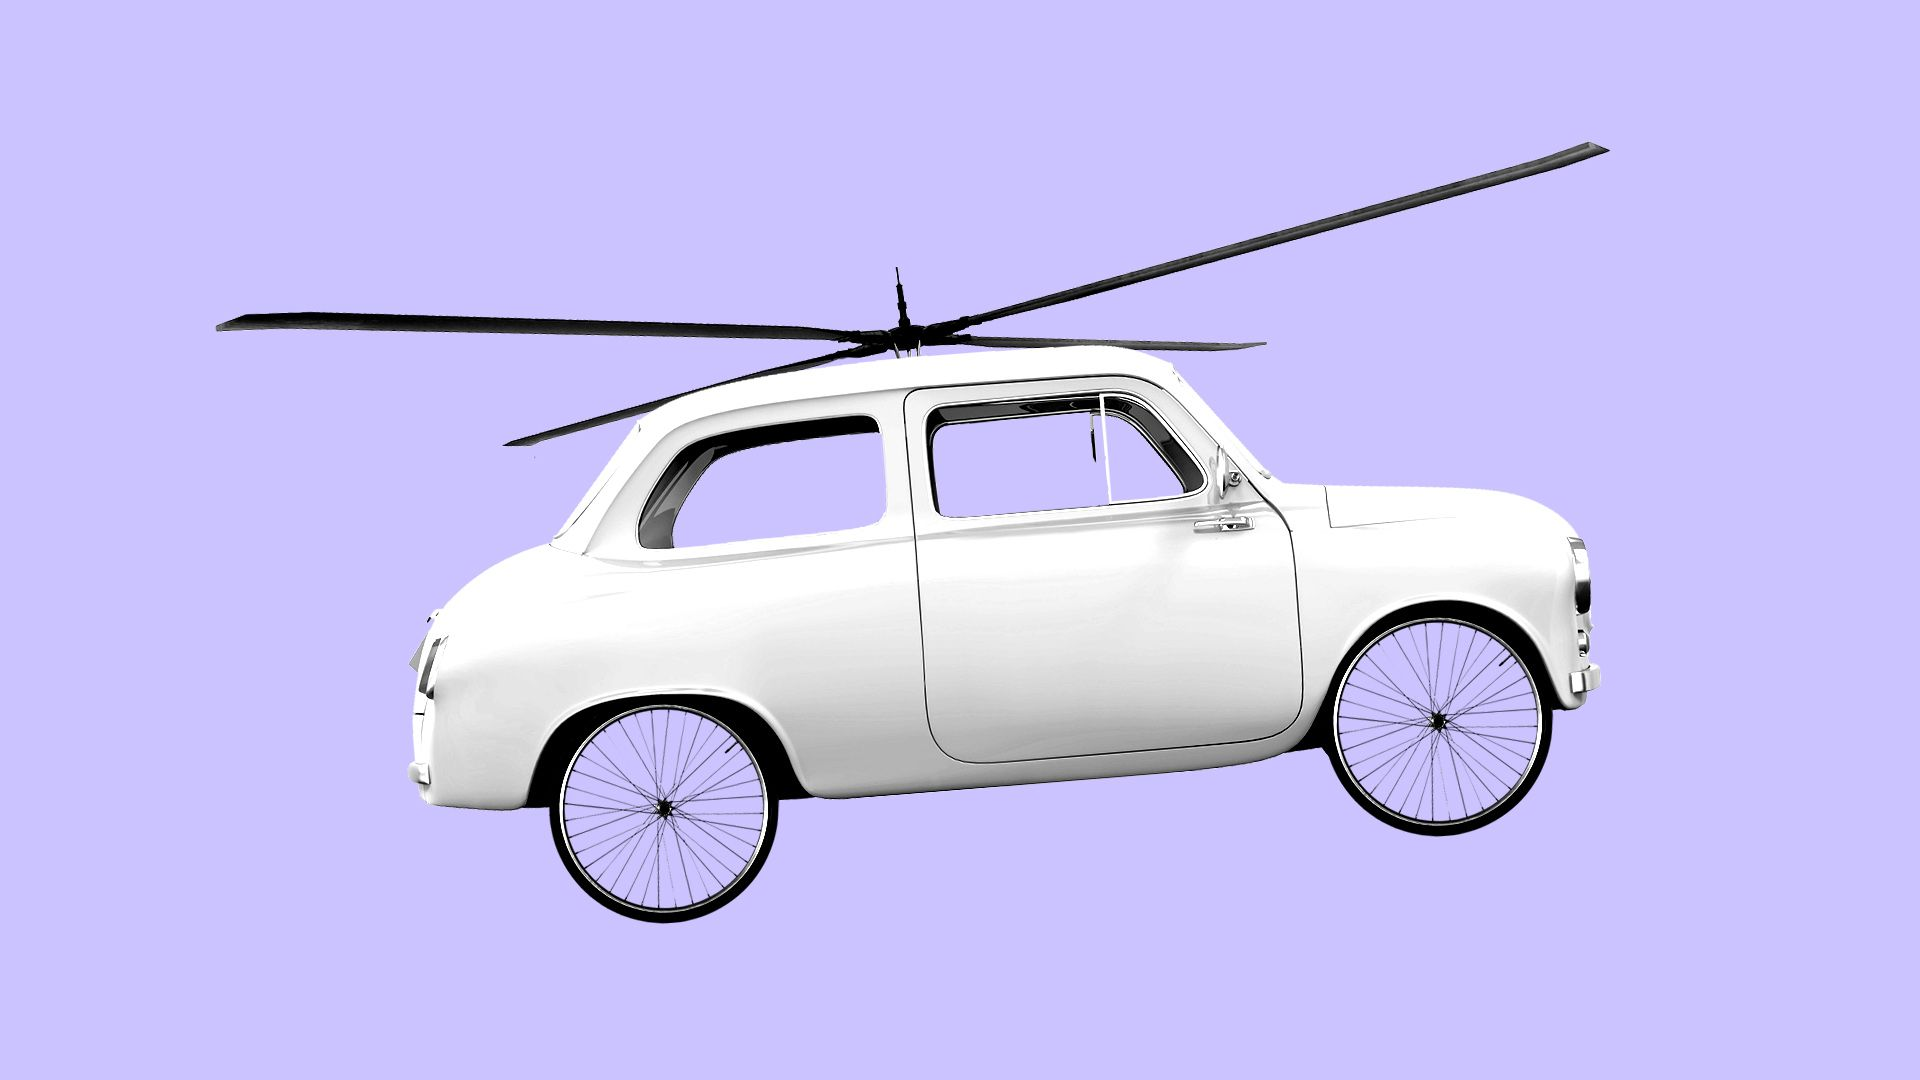 Illustration of car with bicycle tires and a helicopter rotor blade